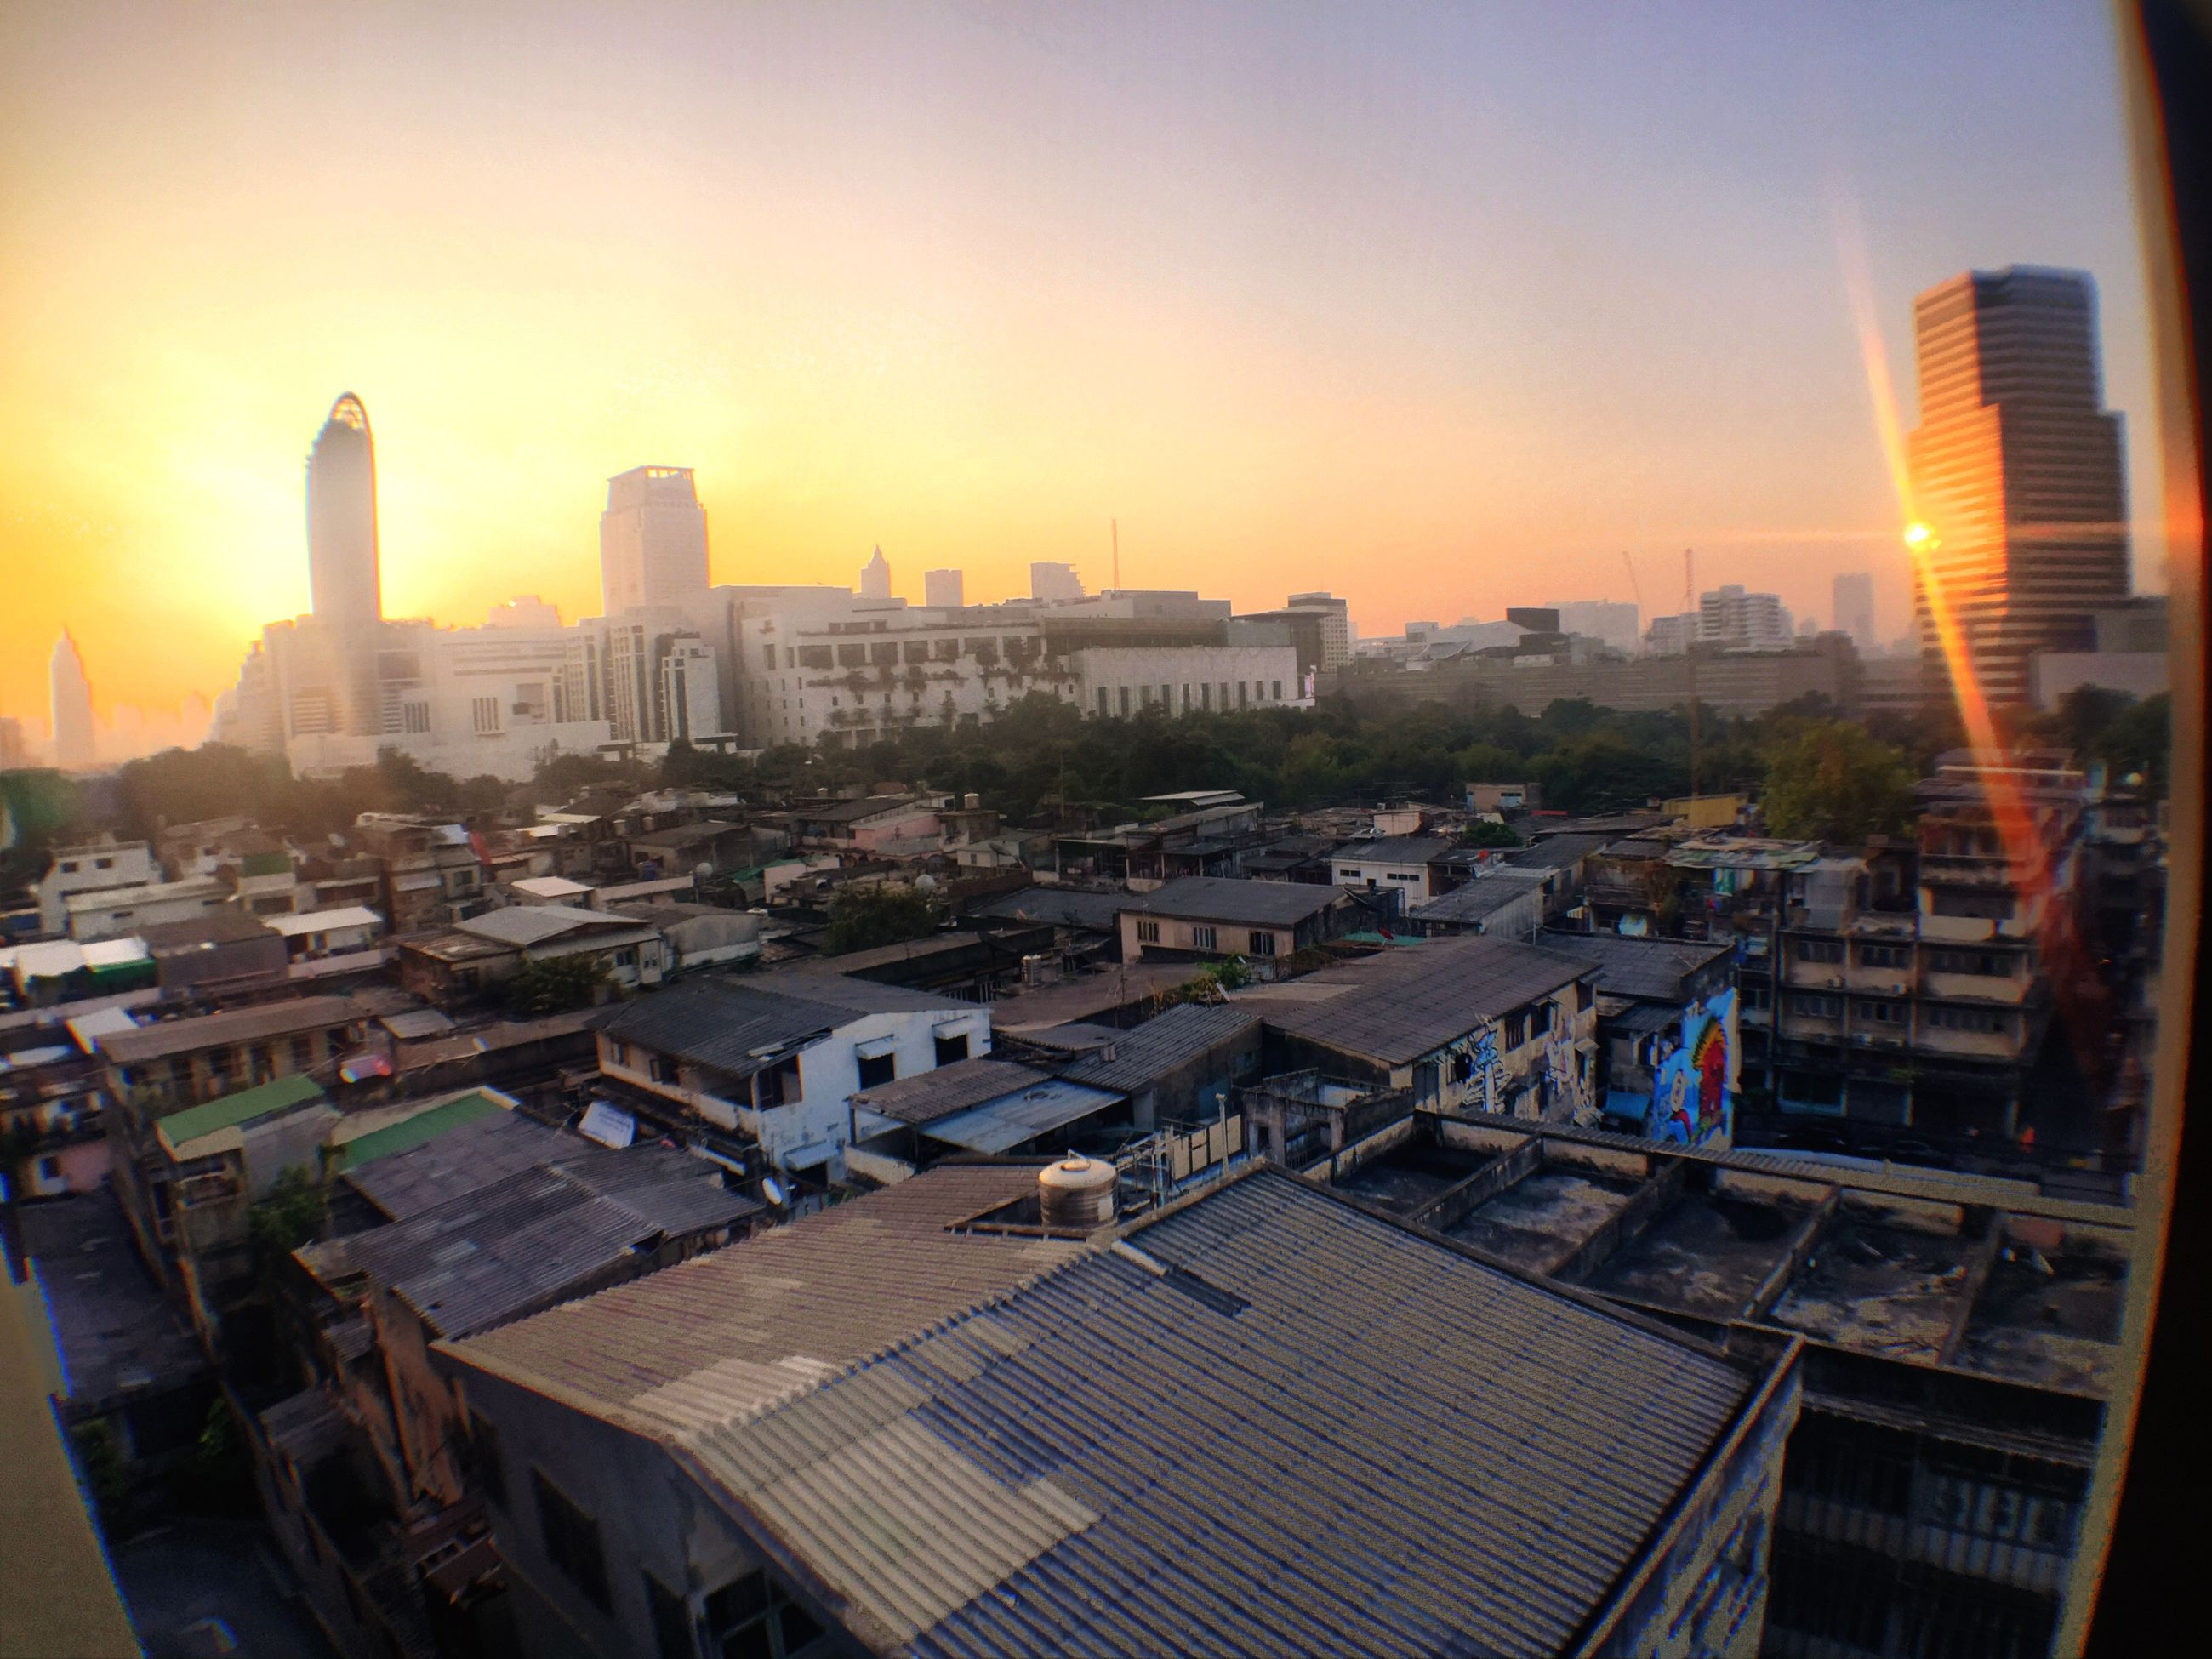 building exterior, architecture, built structure, city, cityscape, sunset, skyscraper, residential district, high angle view, residential building, crowded, sun, city life, residential structure, tall - high, tower, office building, sky, sunlight, modern